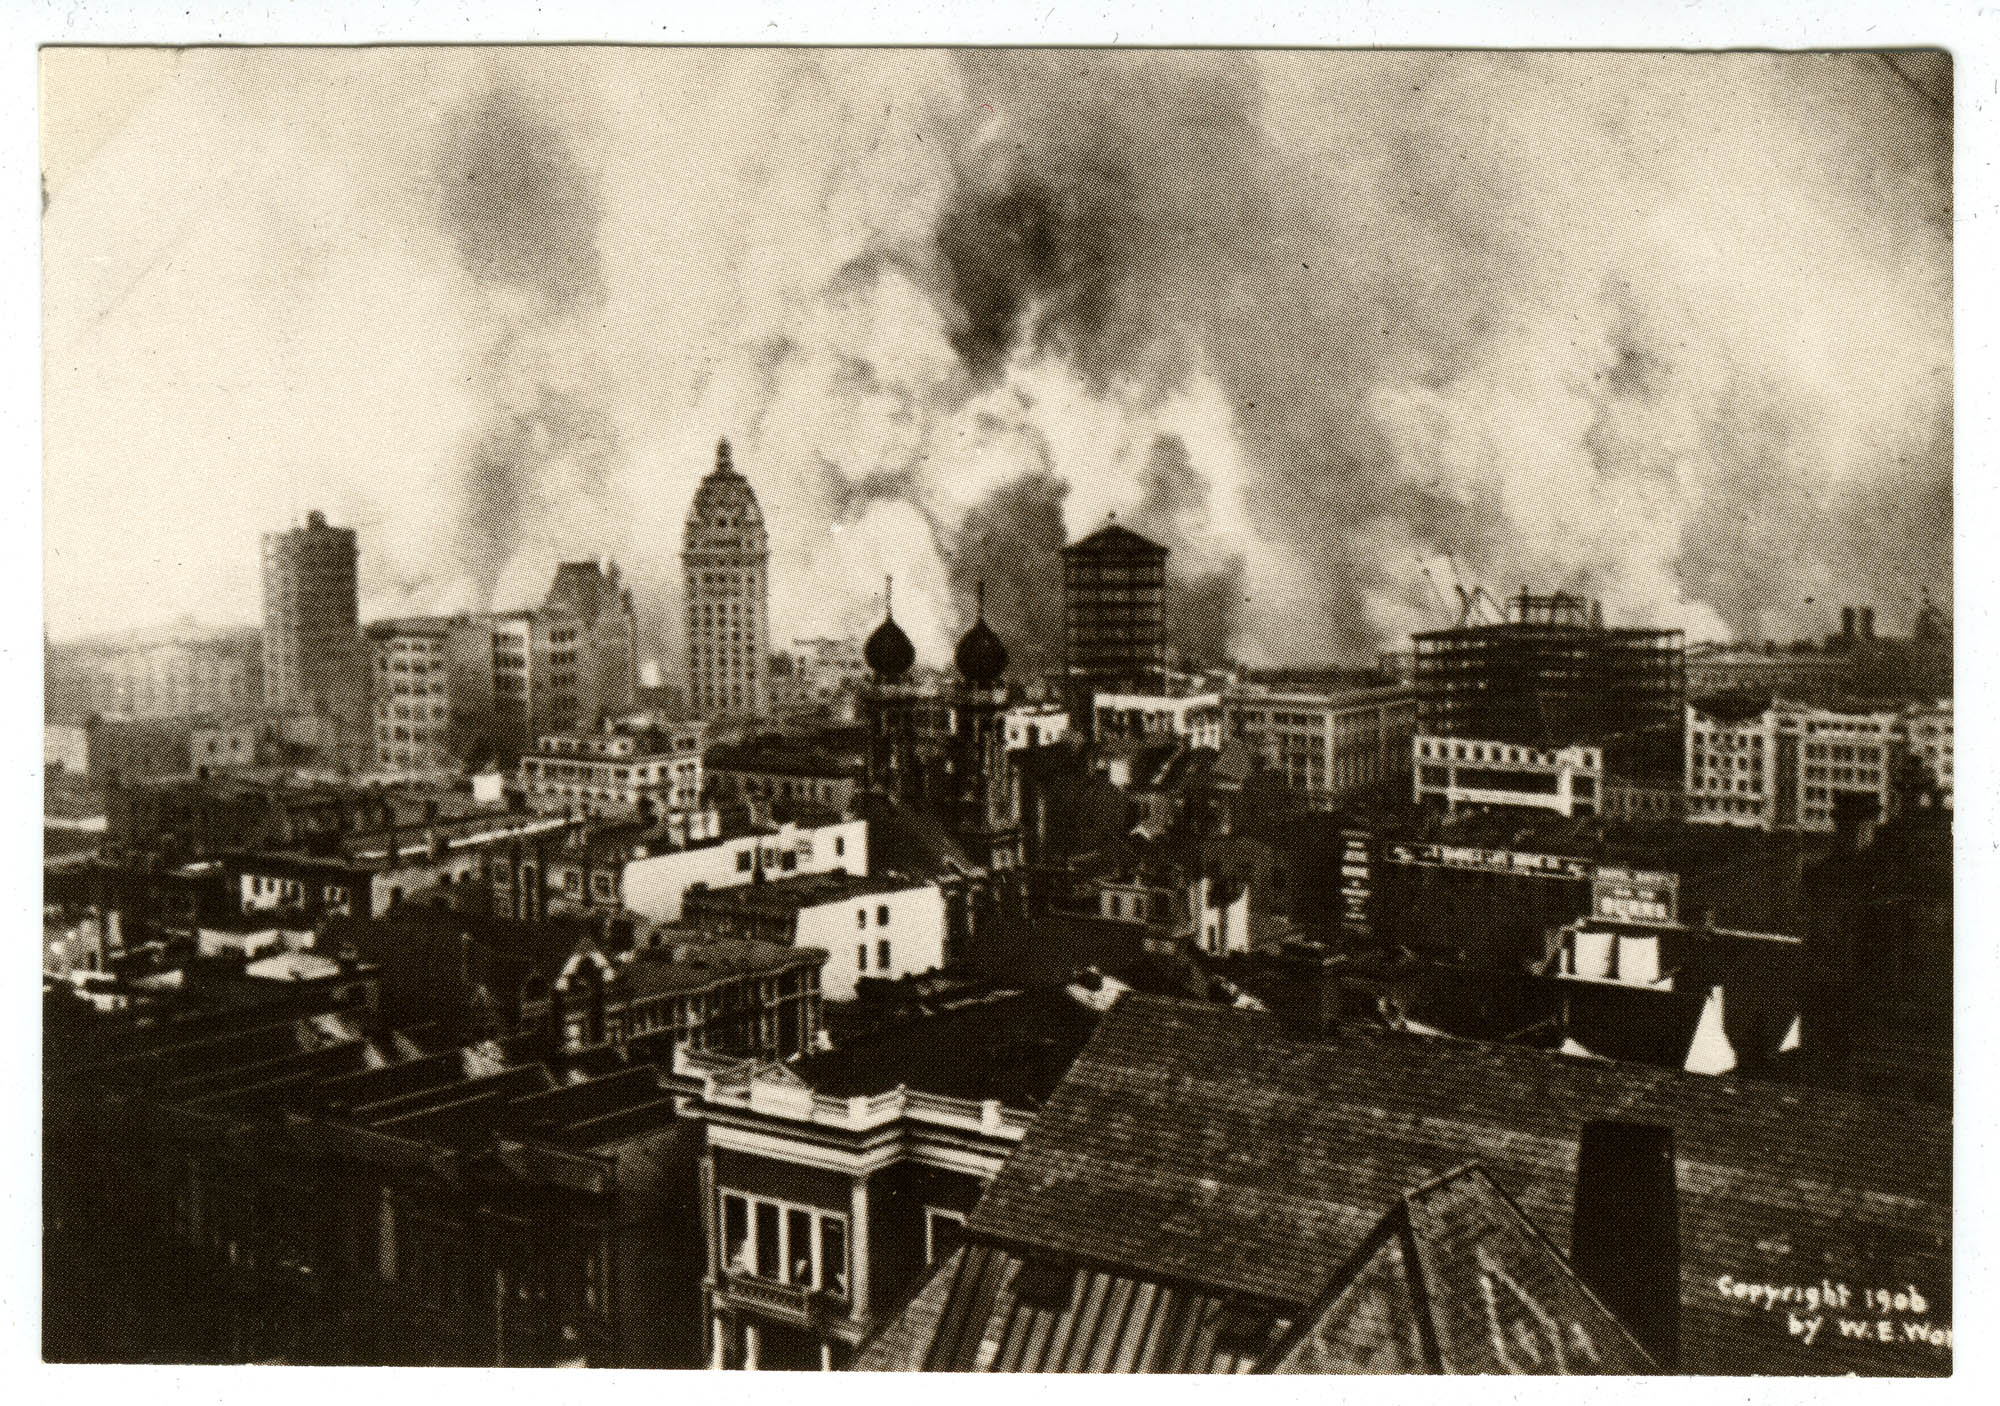 Downtown San Francisco aflame, earthquake and fire of 1906